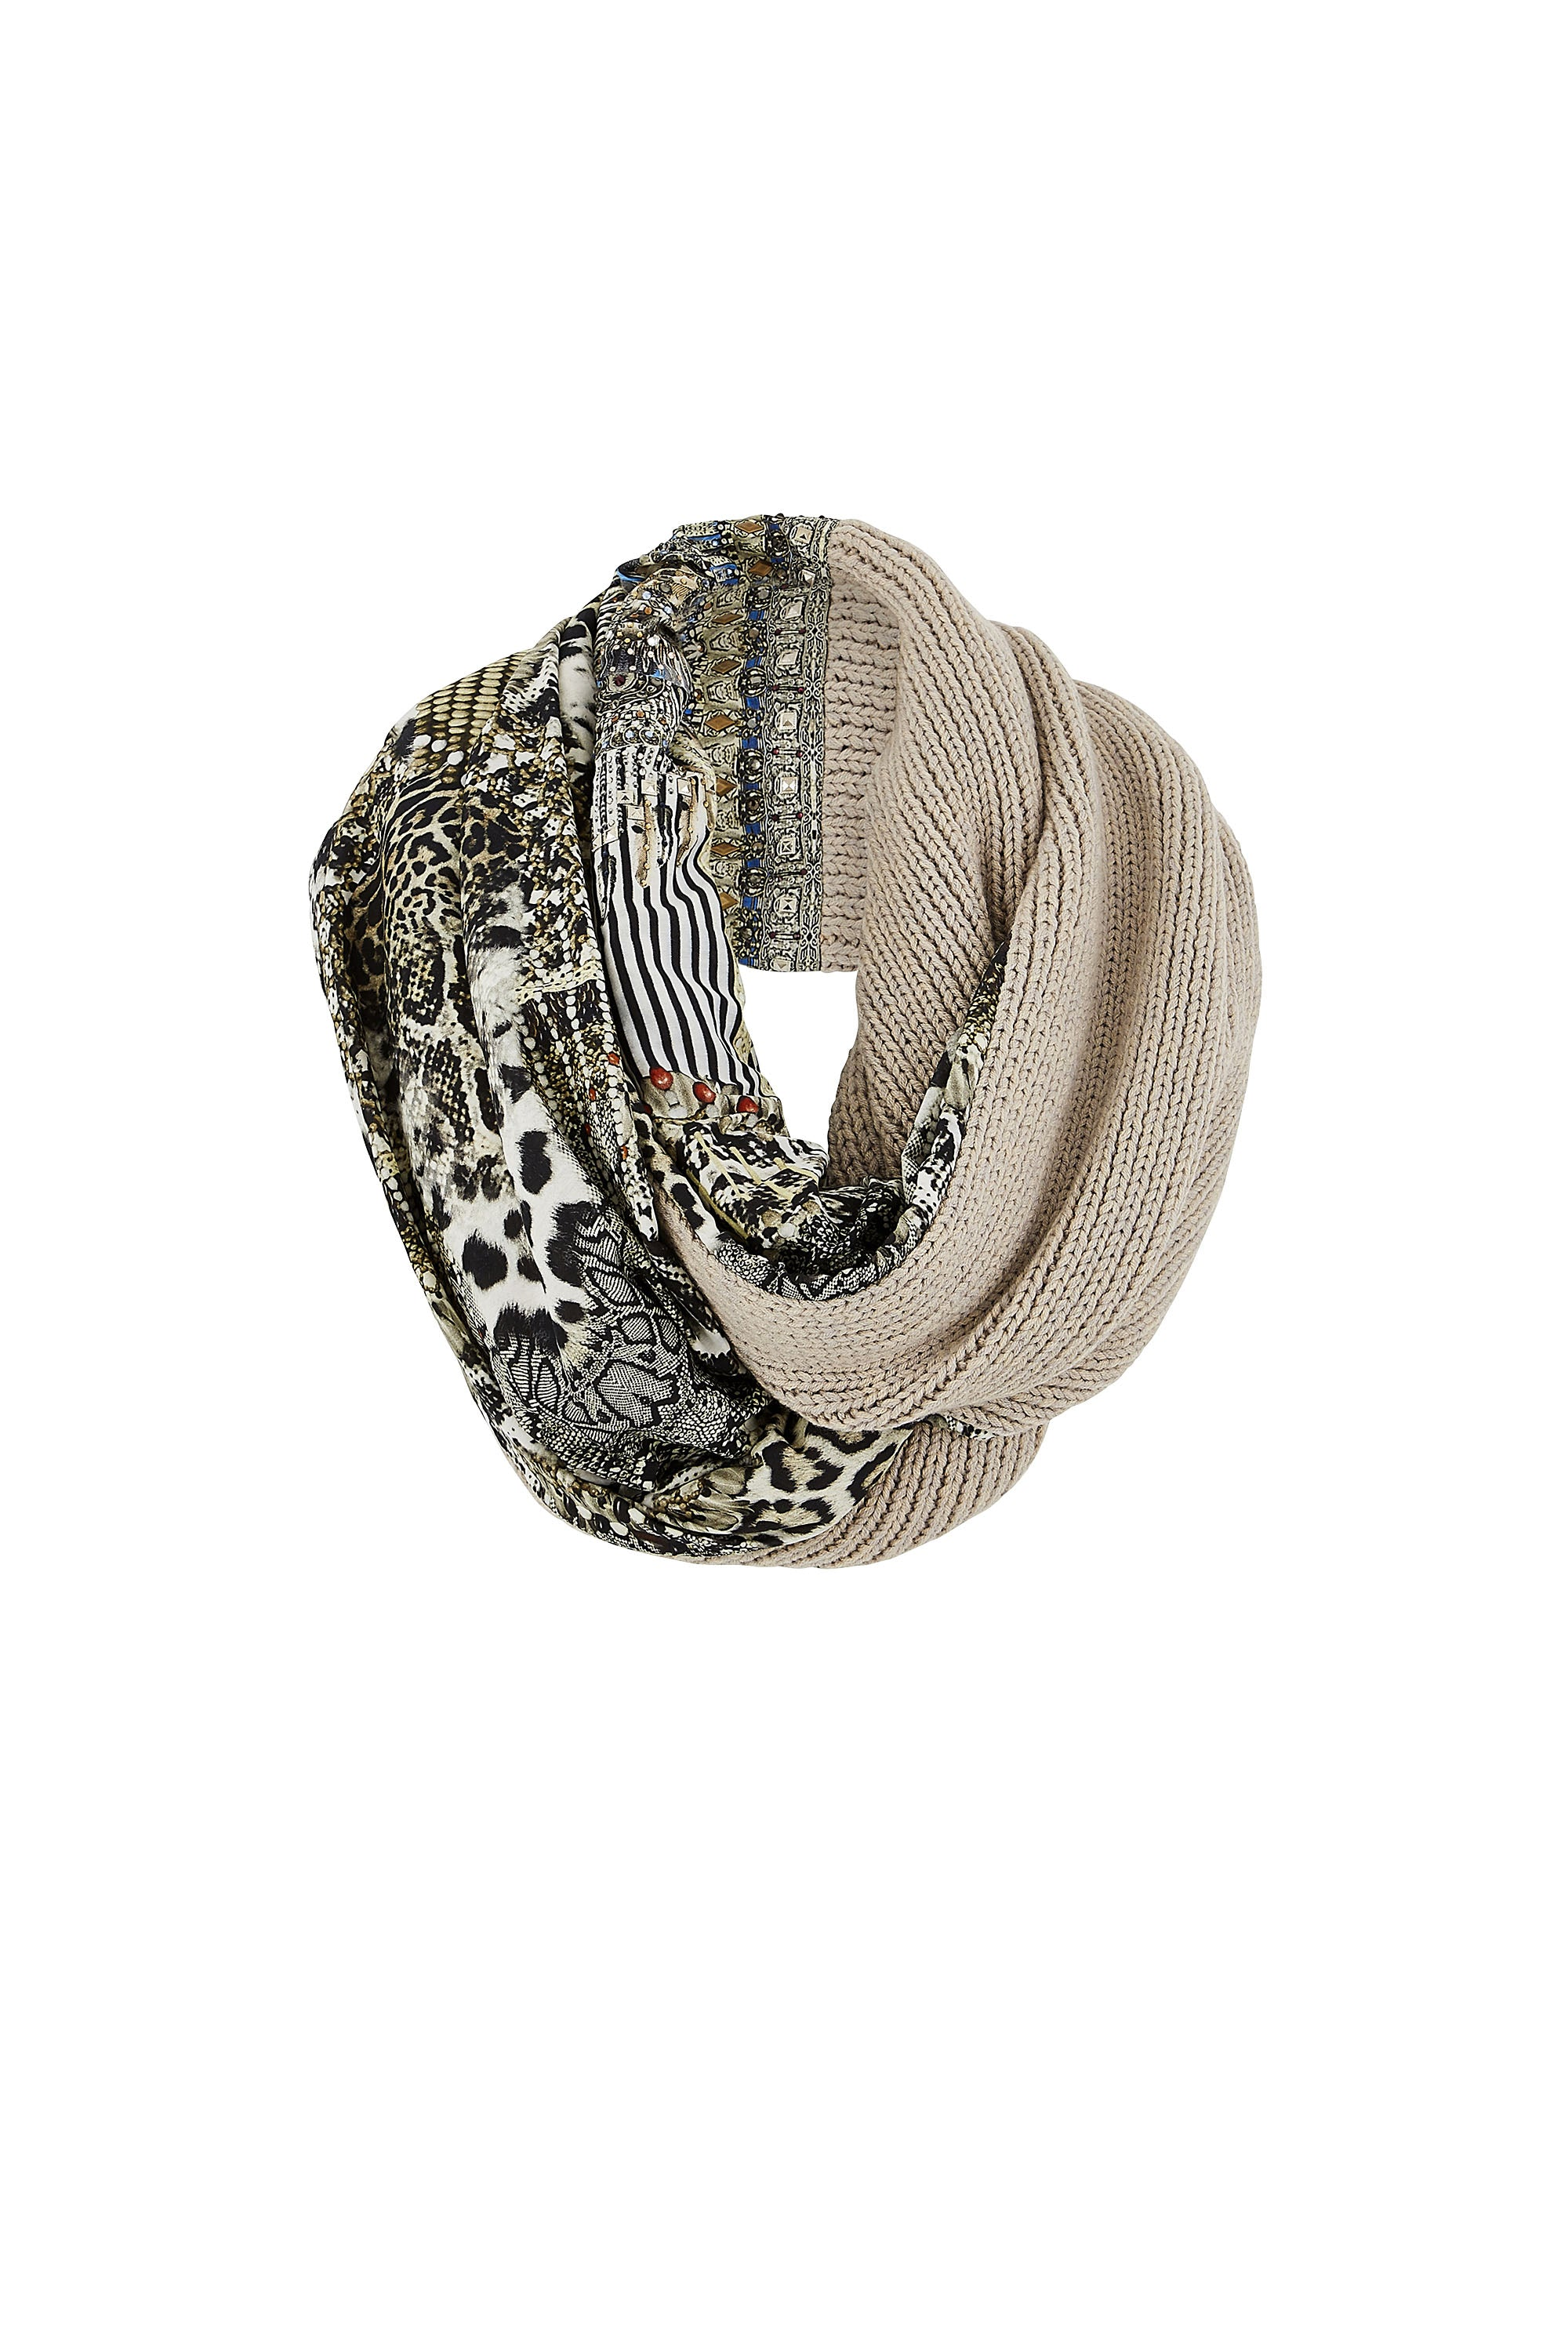 ANIMAL INSTINCT DOUBLE SIDED SCARF